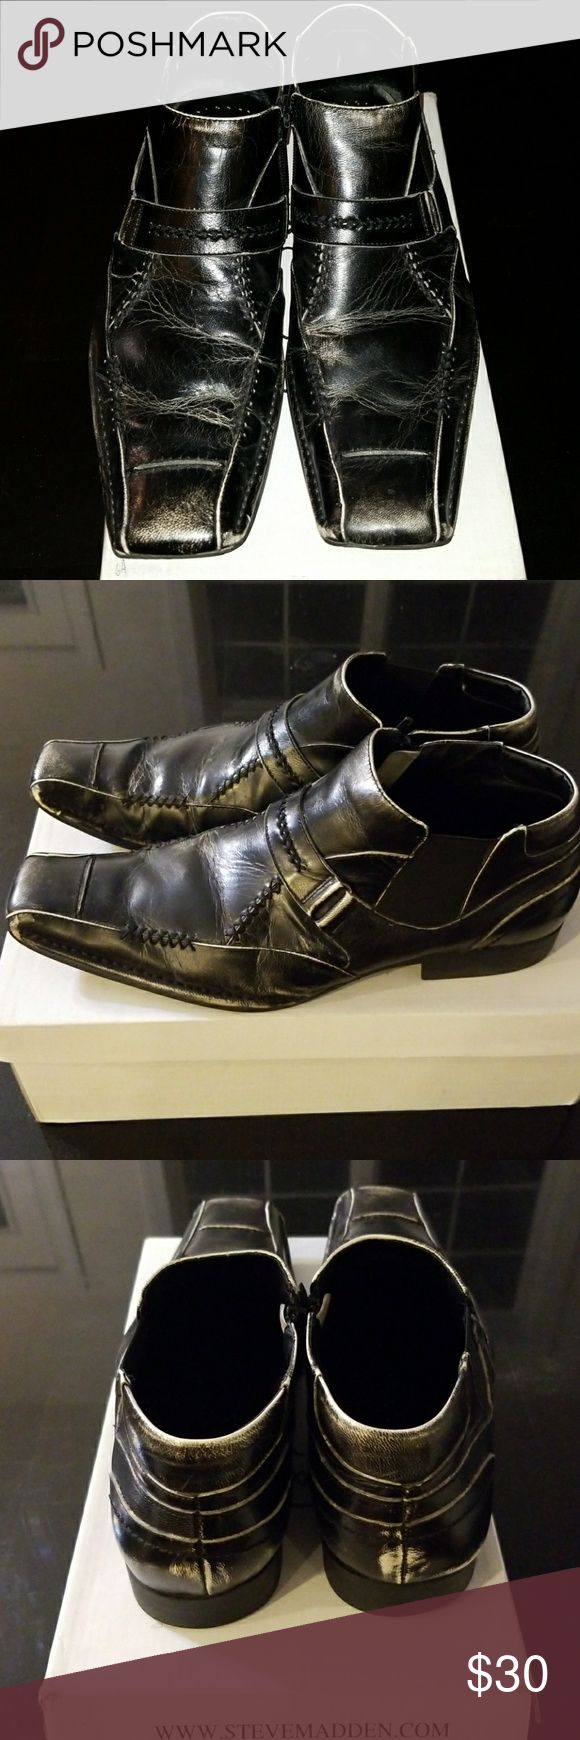 Steve Madden Black Boots Super comfortable distressed boots. One of my favorite pair of boots just don't wear anymore. You'll definitely enjoy these as well! Steve Madden Shoes Boots